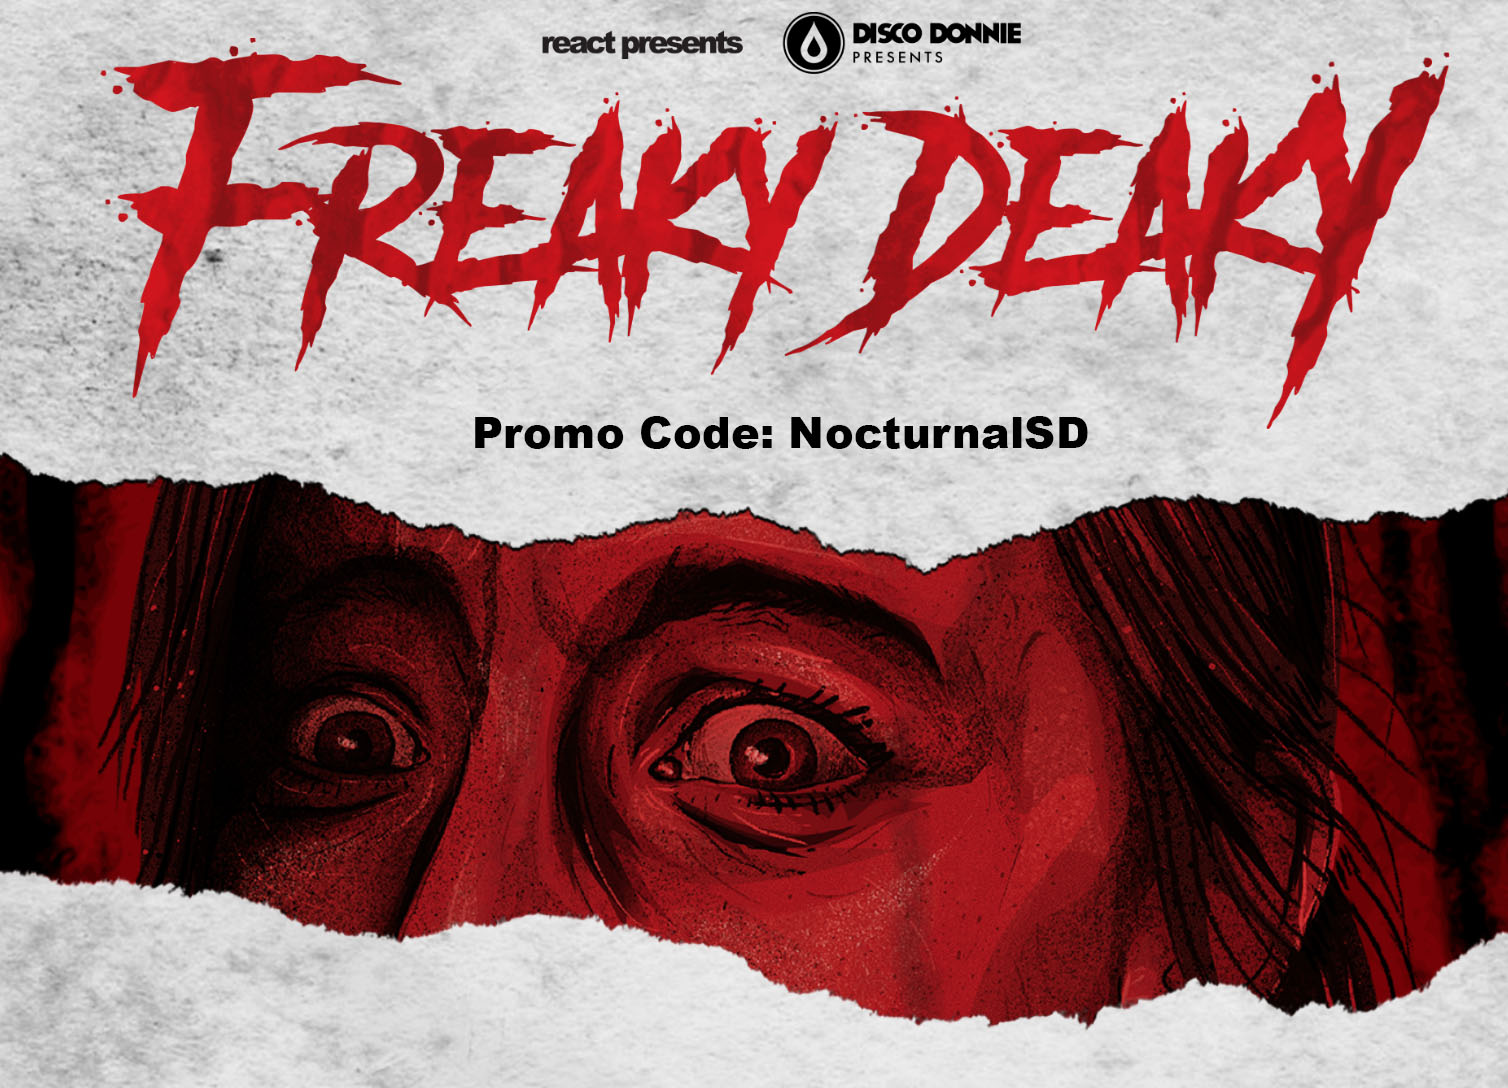 Freak Deaky Texas Promo Code 2019